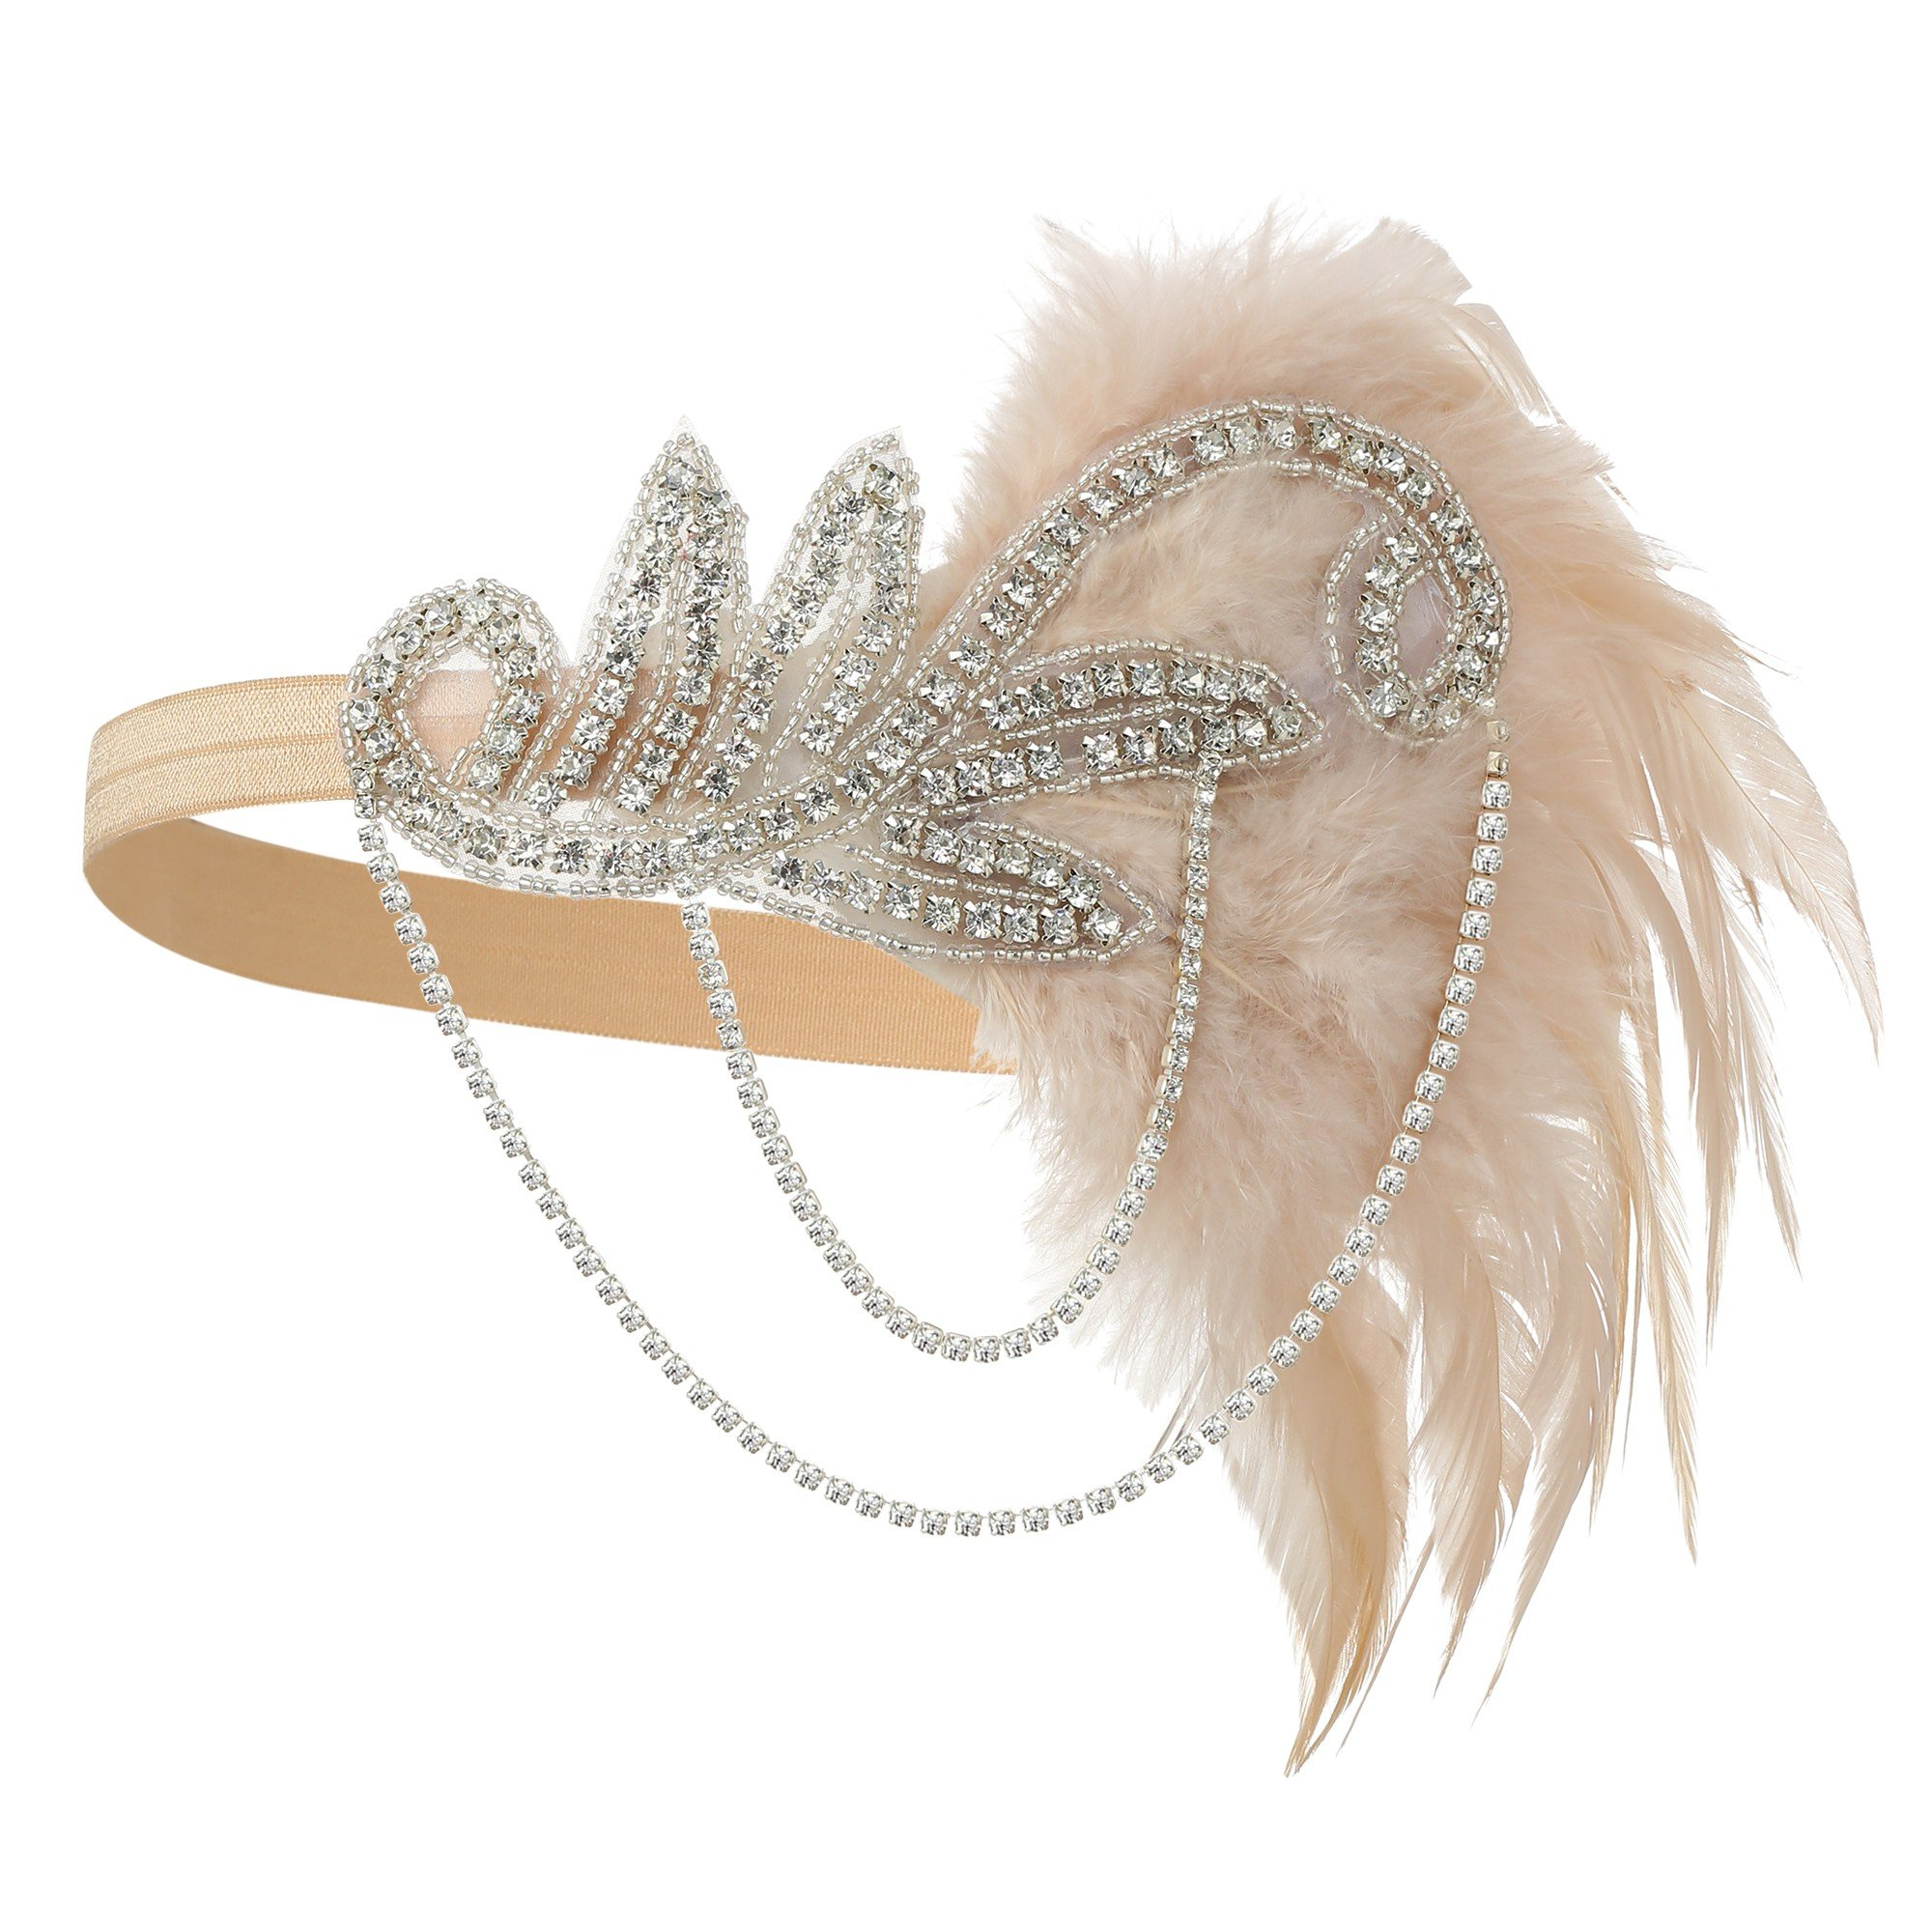 1920s Gatsby Flapper Feather Headband 20s Accessories Crystal Beaded Wedding Headpiece (1-Pink)